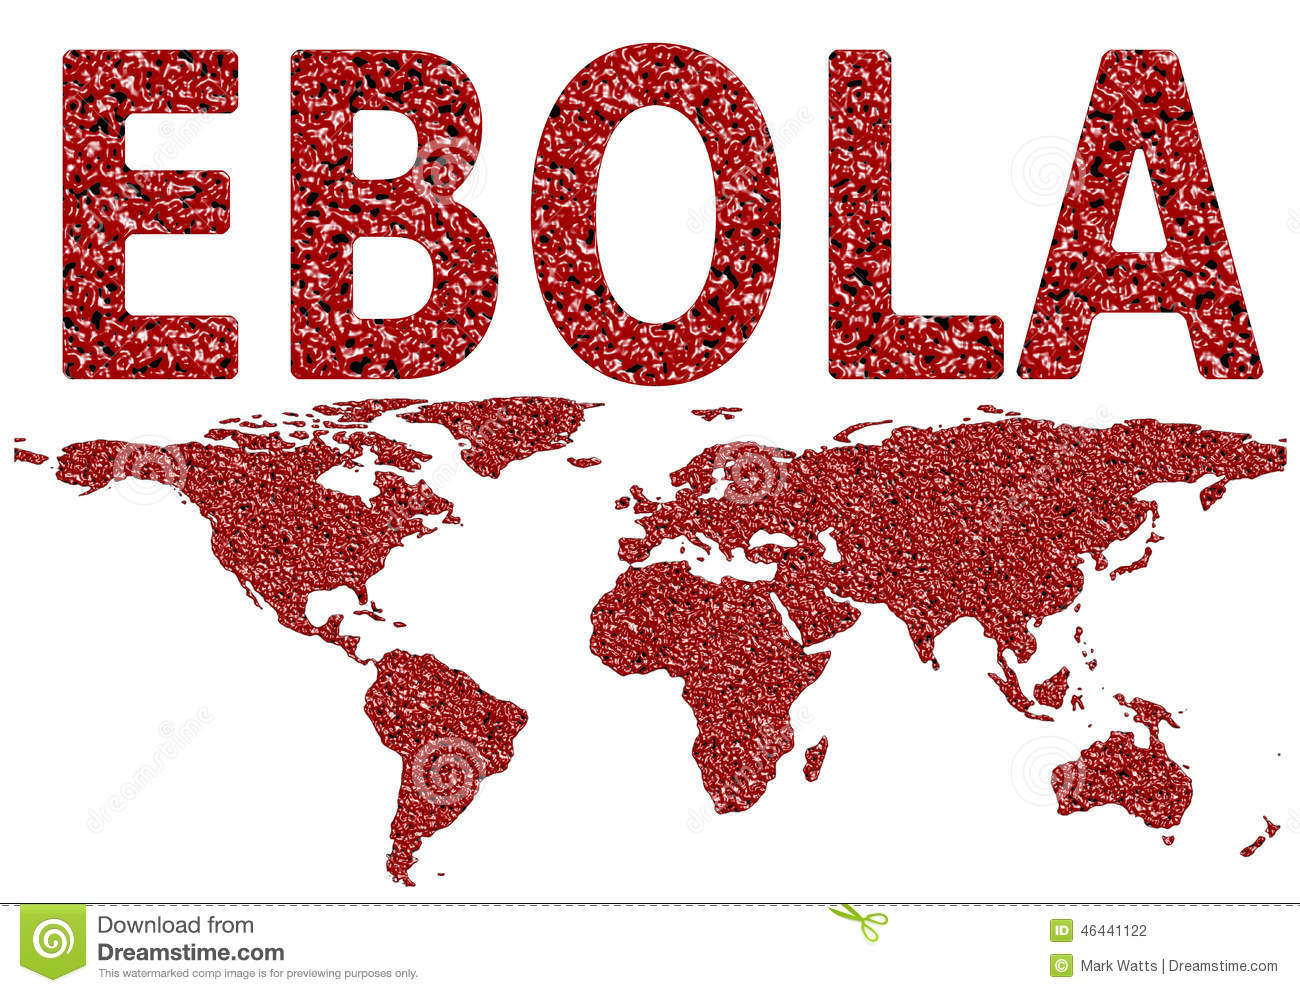 Ebola virus worldwide spread blood droplet textured map on an isolated ...